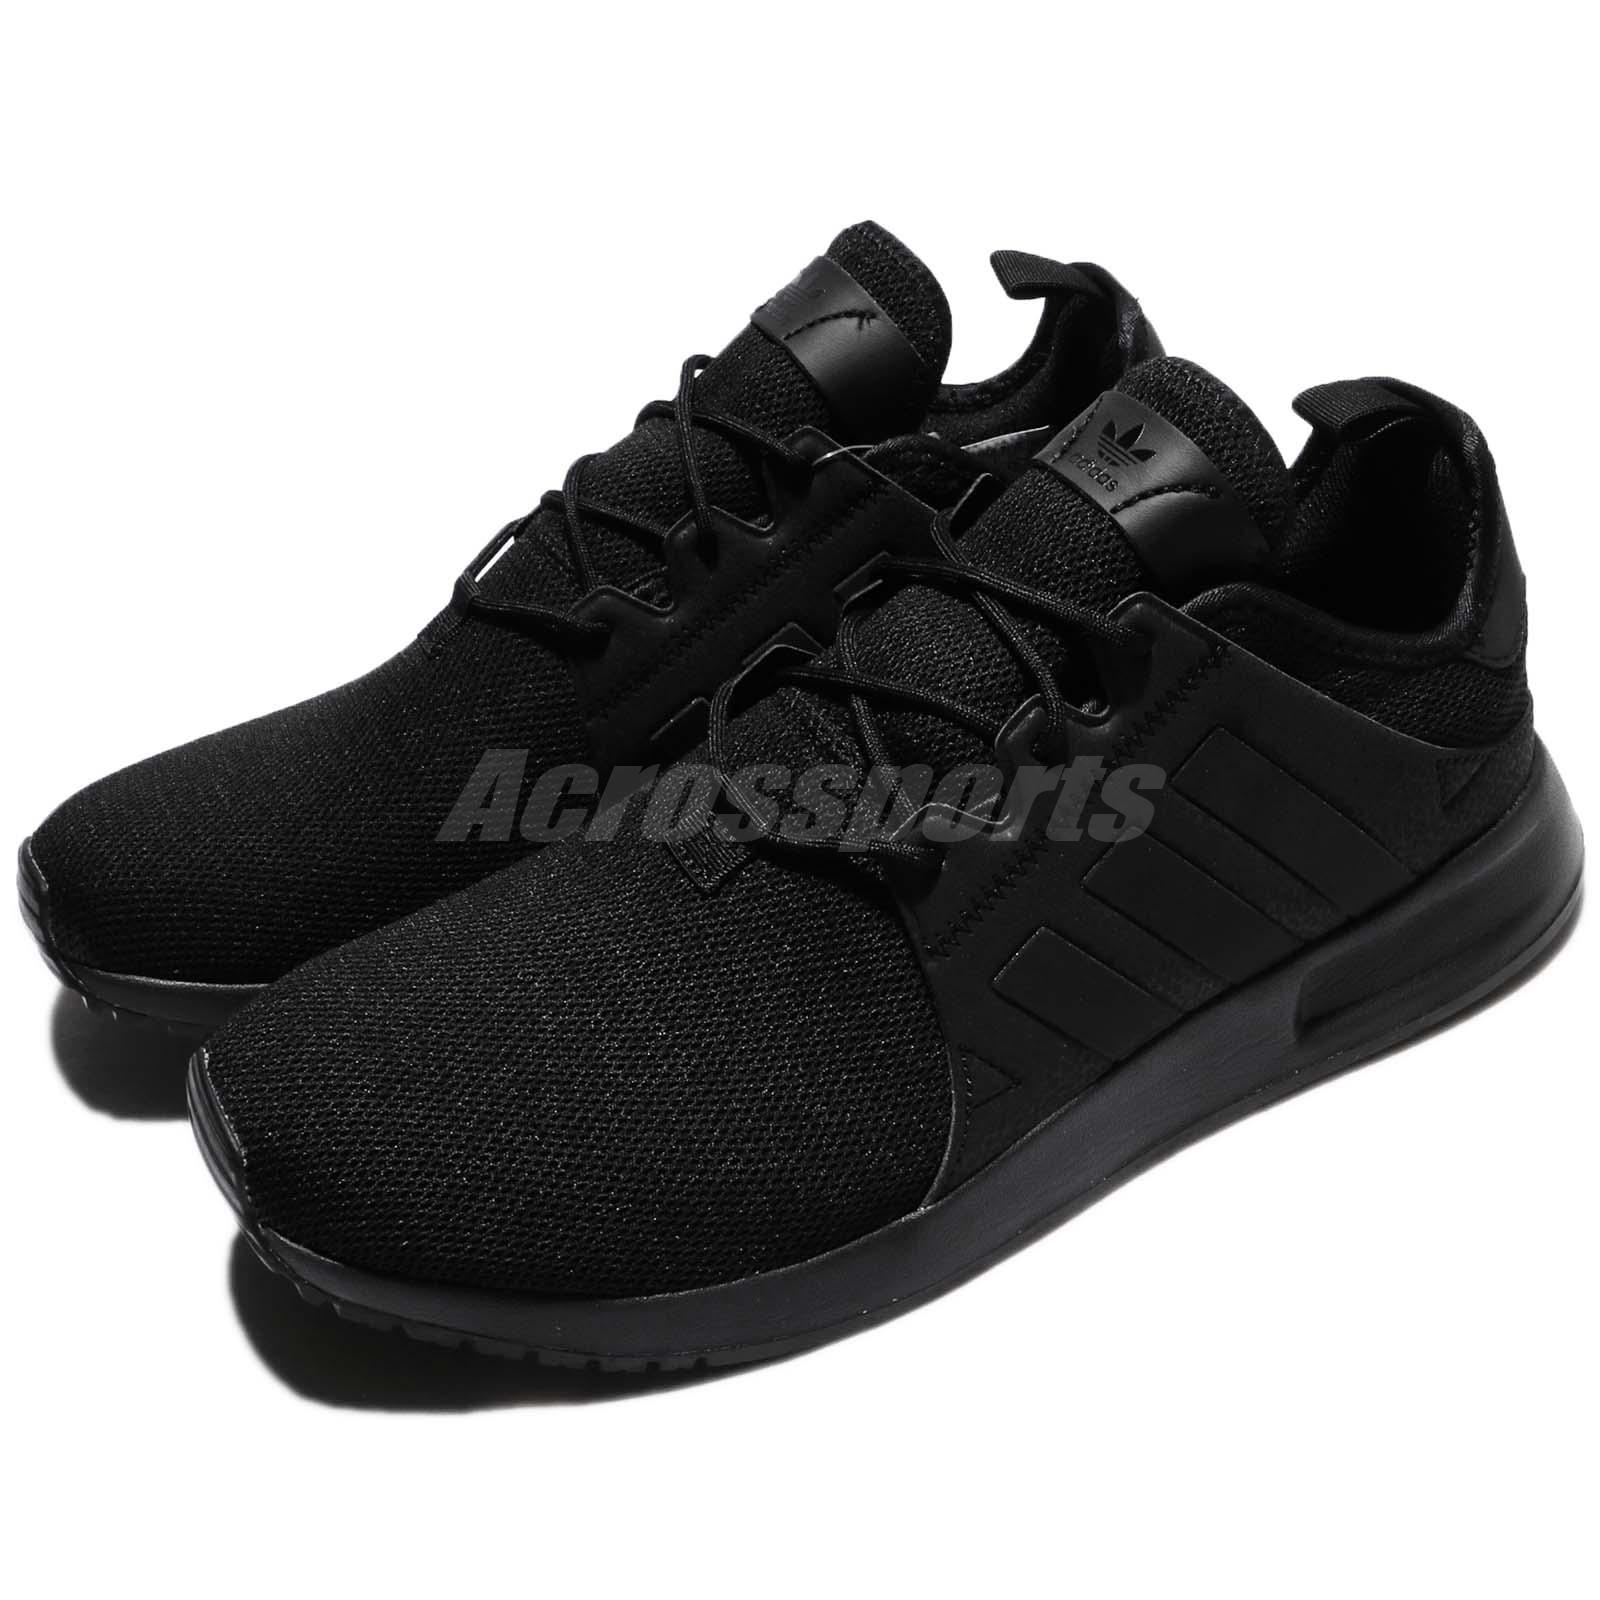 Details about adidas Originals X_PLR Black Trace Grey Men Women Running Shoes Sneakers BY9260